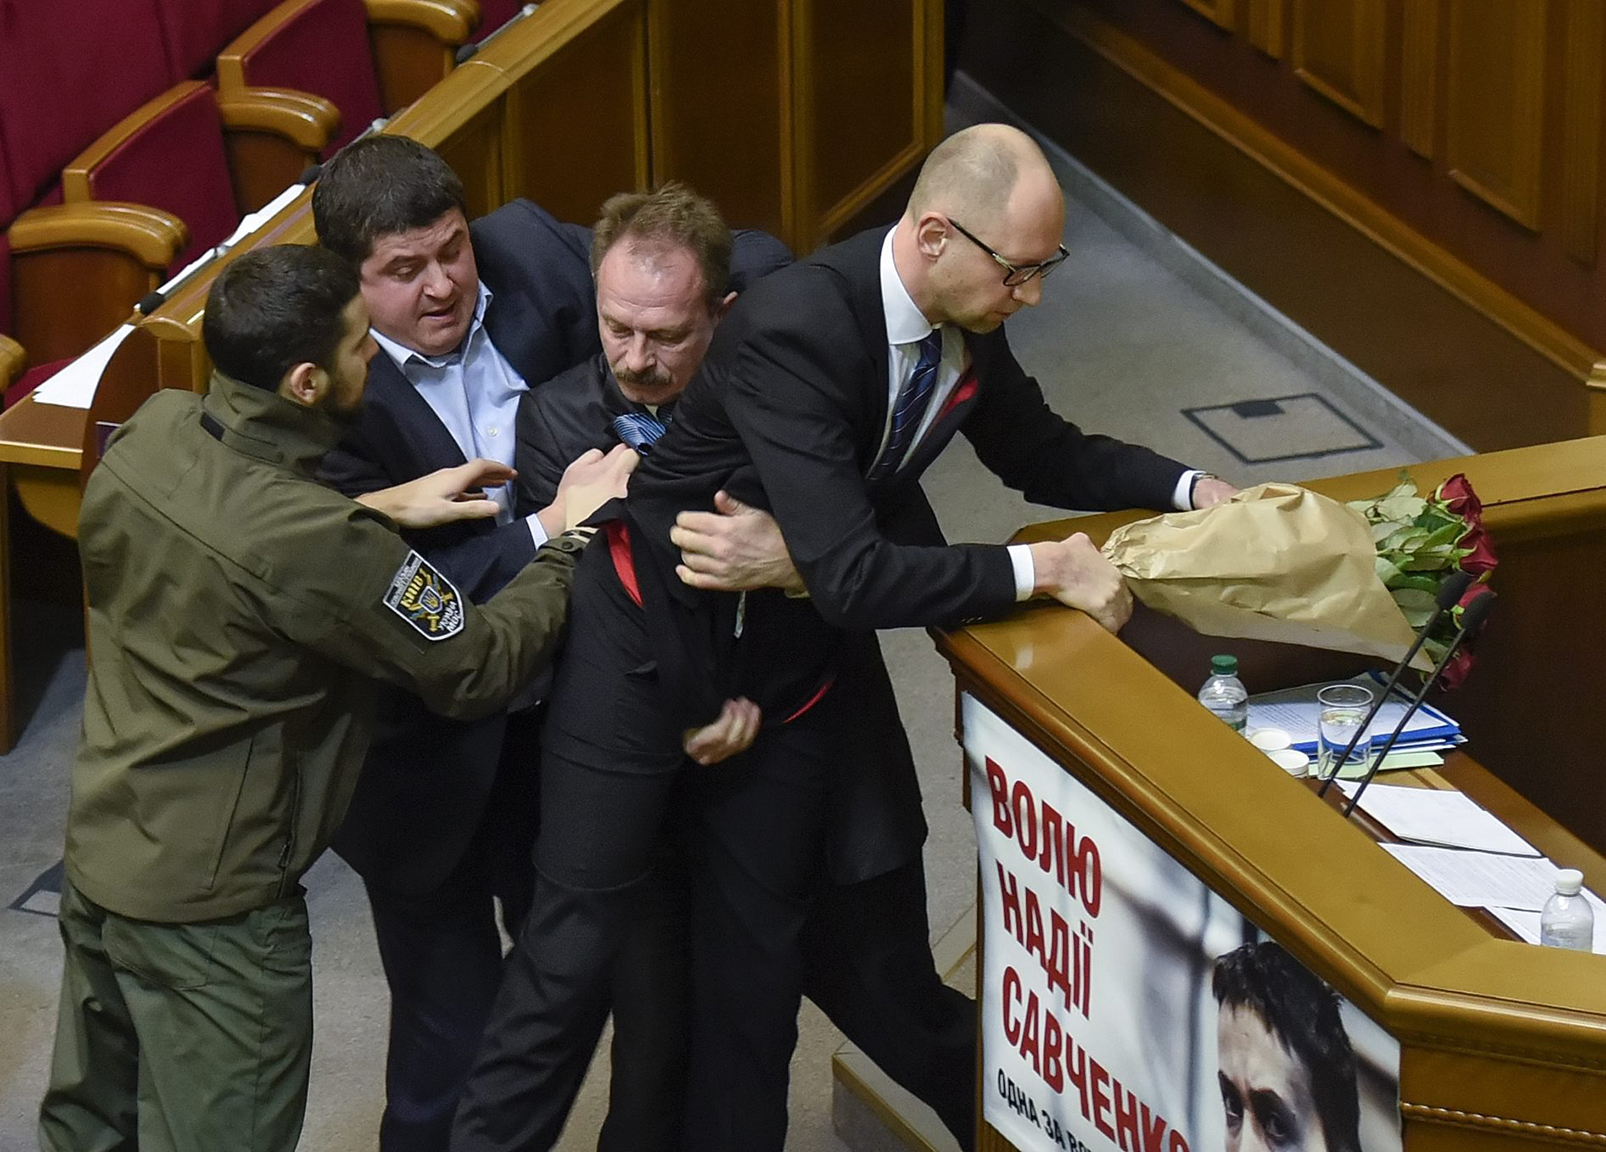 Ukrainian Prime Minister Arseniy Yatsenyuk annual statement in Ukrainian Parliament.